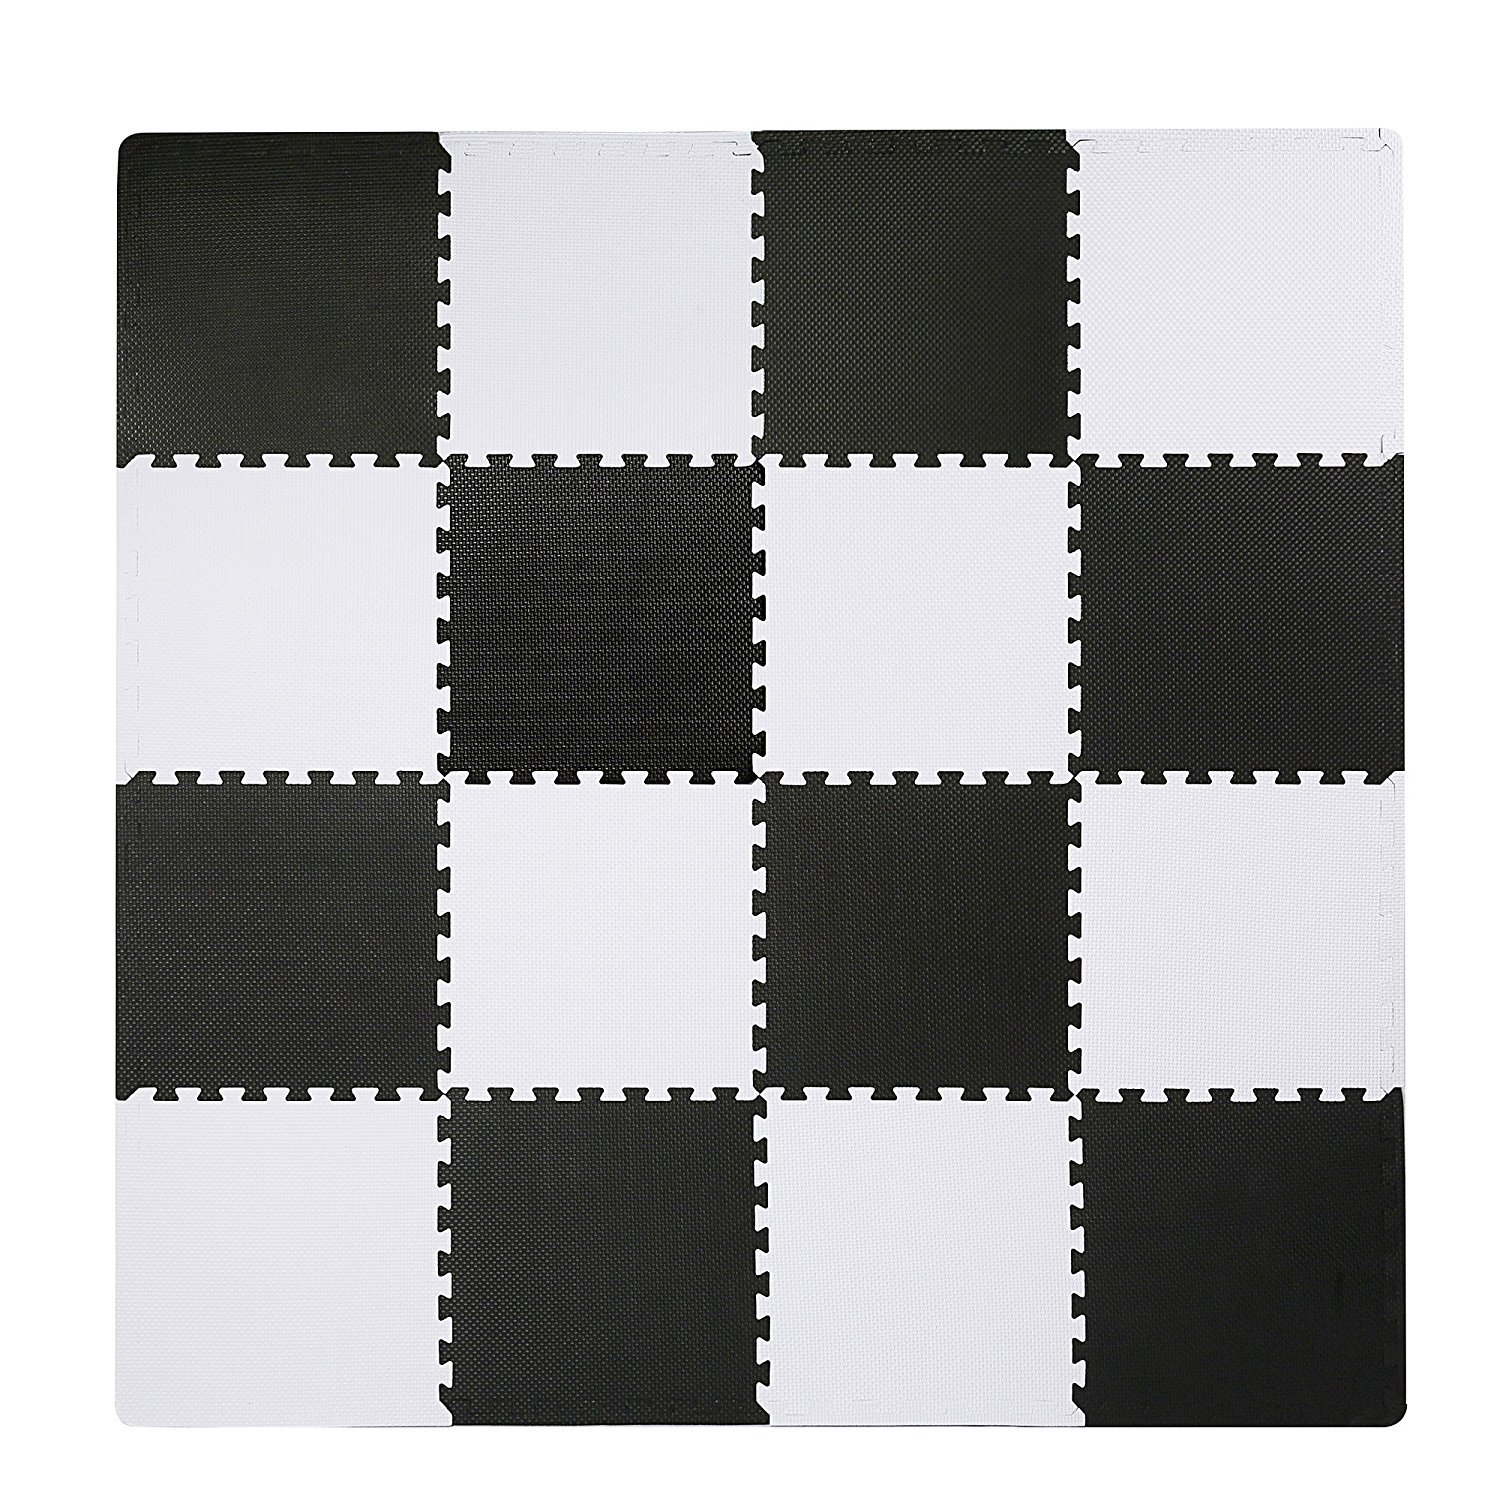 Superjare Interlocking Floor Tiles, 16 Tiles EVA Foam Puzzle Mat with Borders - White and Black by SUPERJARE